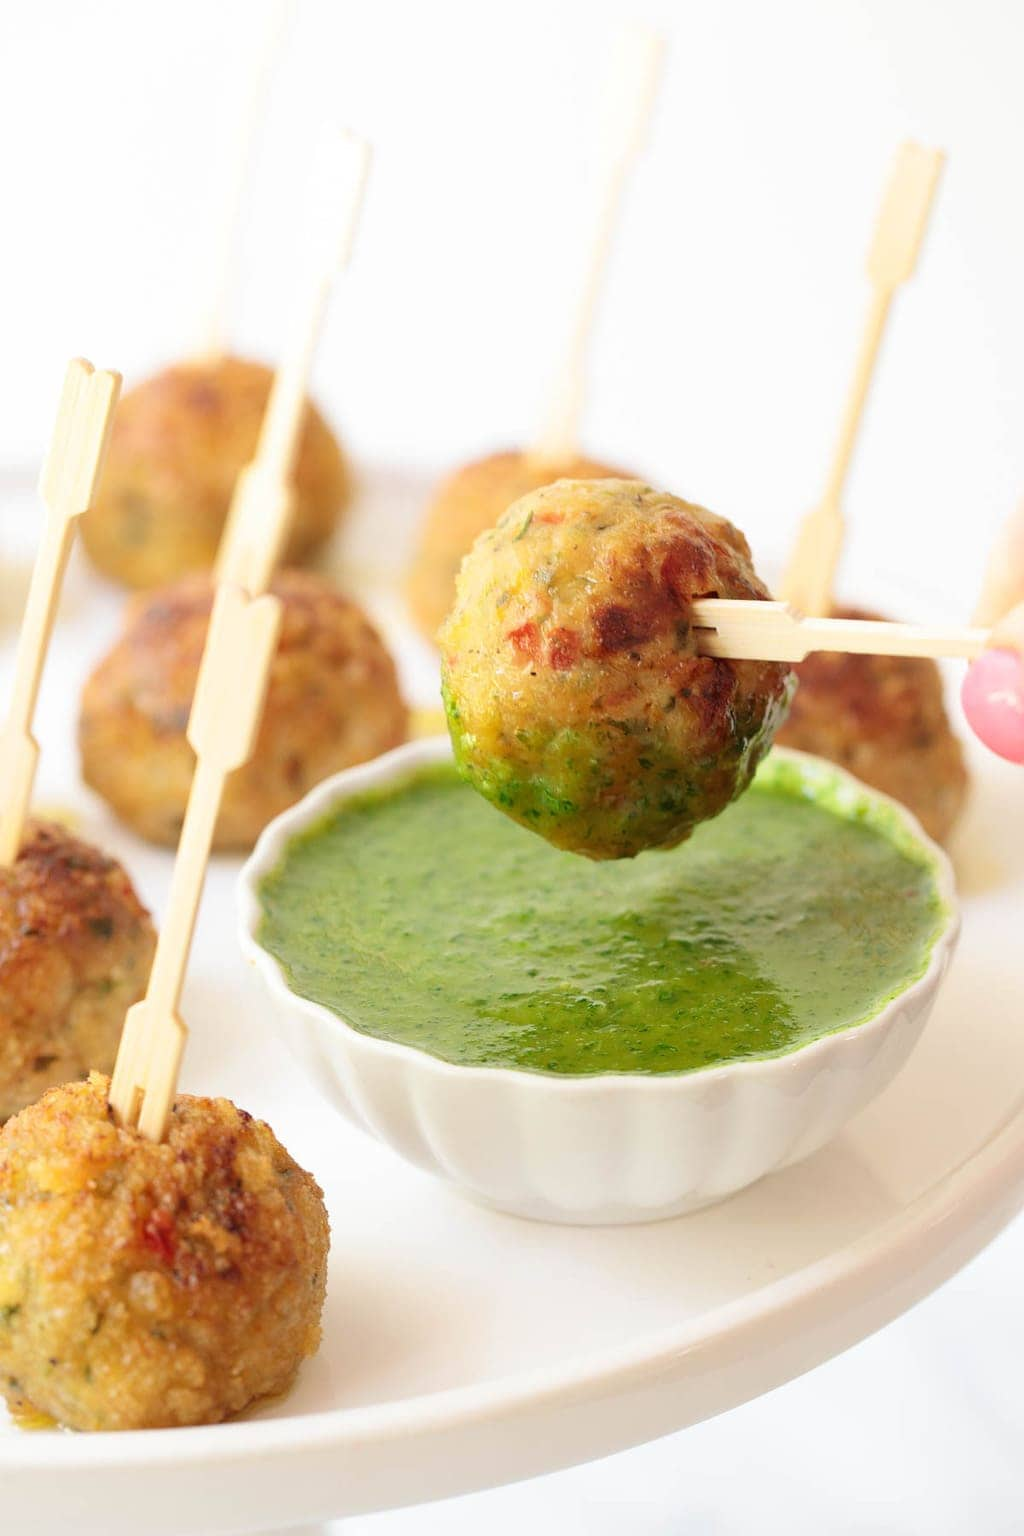 An image of Vietnamese Chicken Meatballs on a serving tray with a small bowl of dipping sauce. Holiday appetizers post.